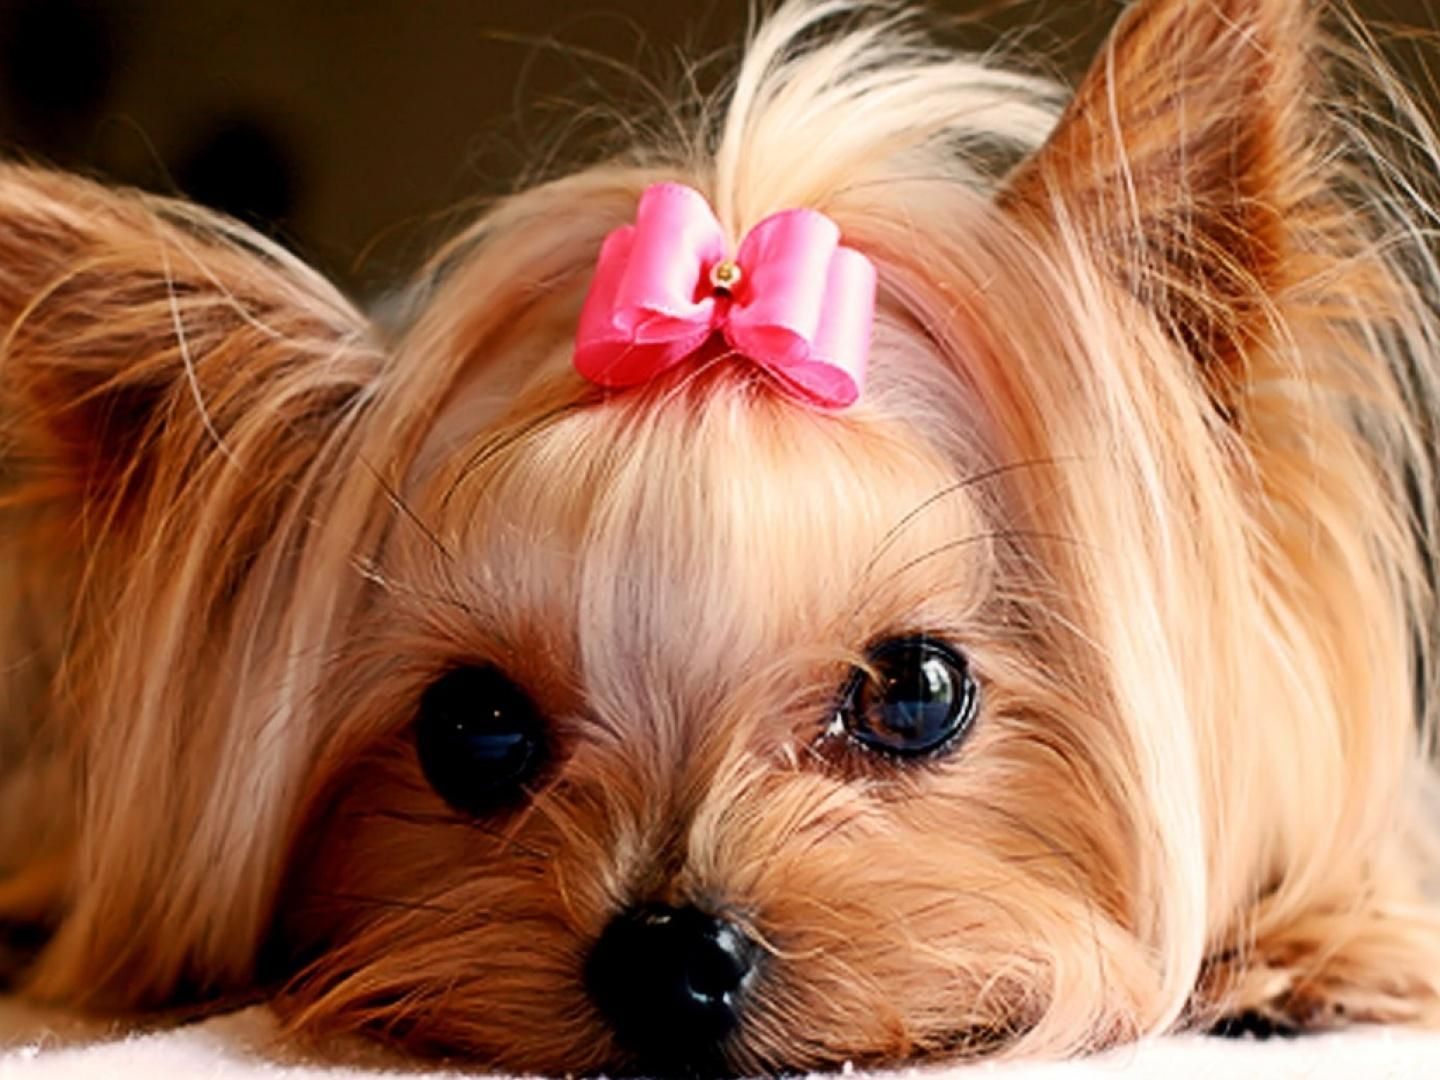 Fantastic Terrier Bow Adorable Dog - eb33d61d0f8f56fe5864fc947d9bf2b7  Perfect Image Reference_793269  .jpg